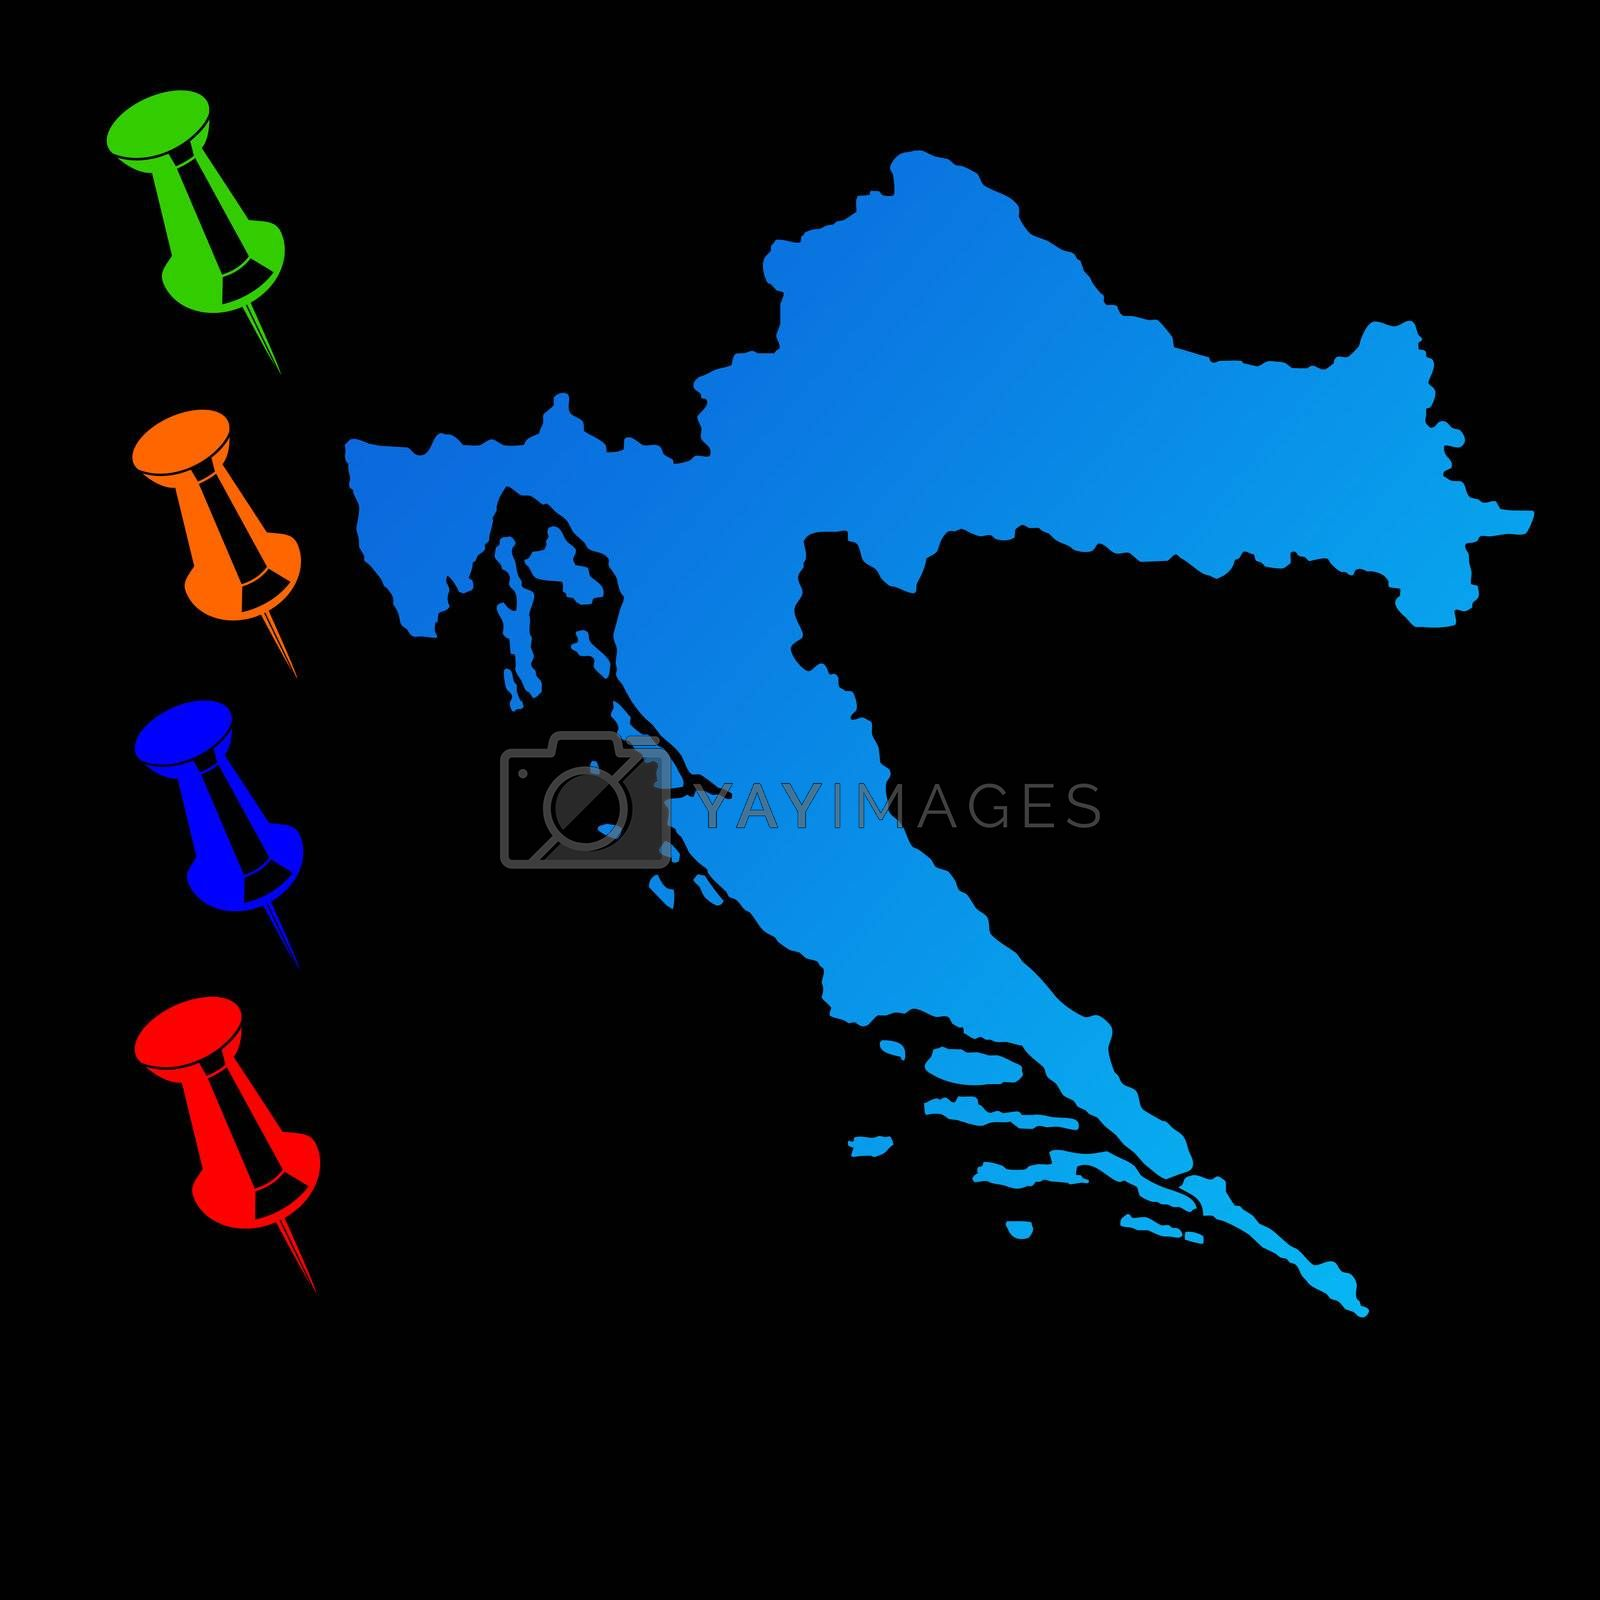 Croatia travel map with push pins on black background.